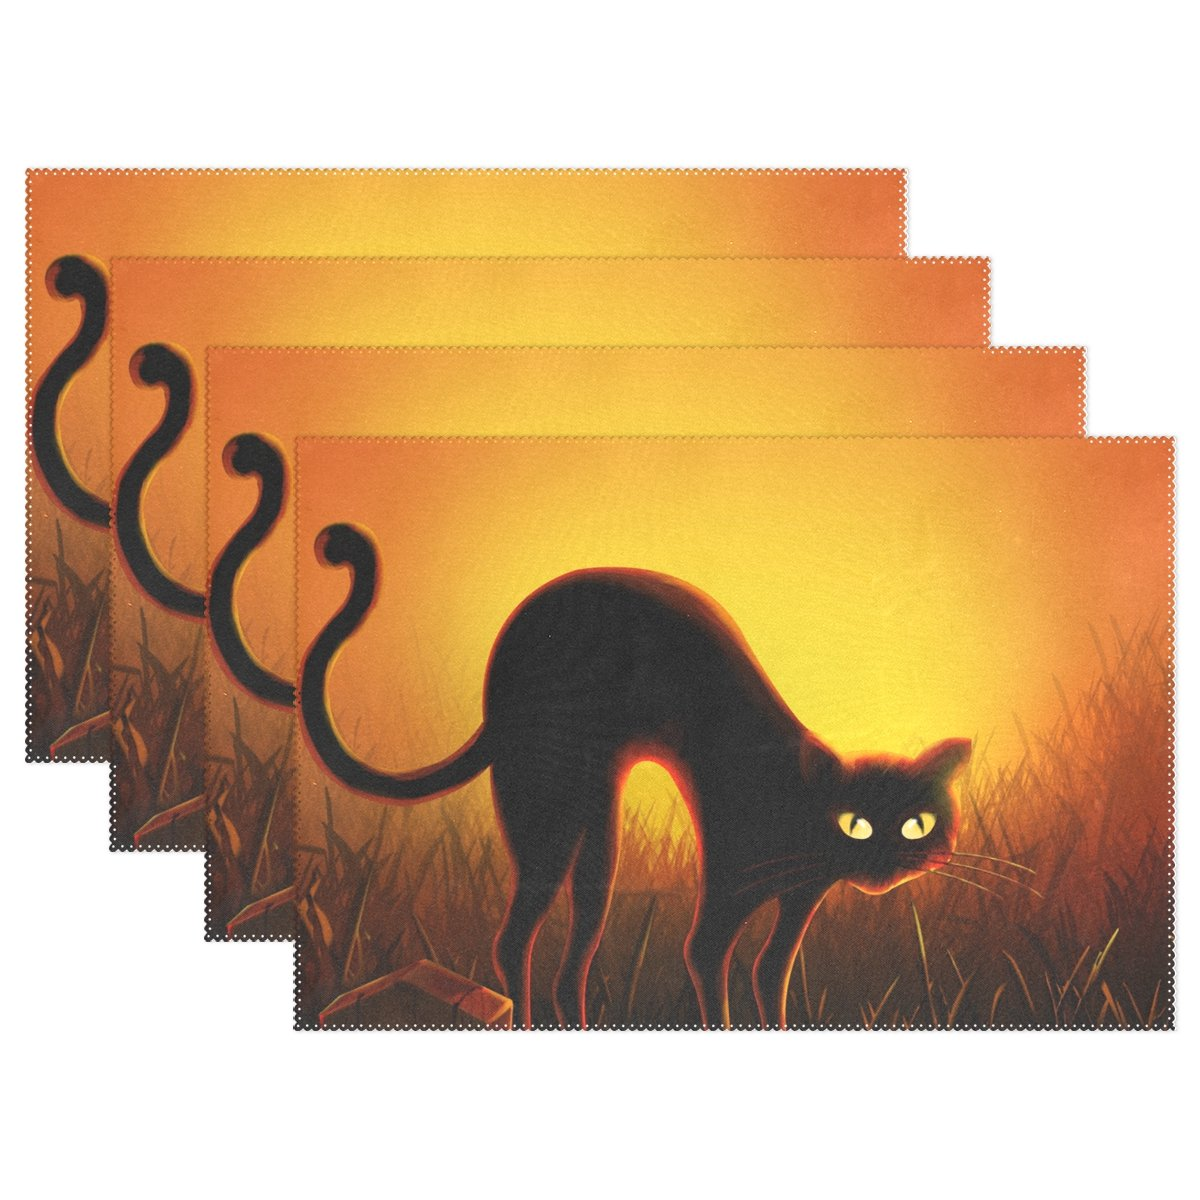 Halloween Black Cat Print Placemats, ALIREA Heat-resistant Placemats Stain Resistant Anti-skid Washable Polyester Table Mats Non Slip Easy Clean Placemats, 12''x18'', Set of 4 by ALIREA (Image #1)